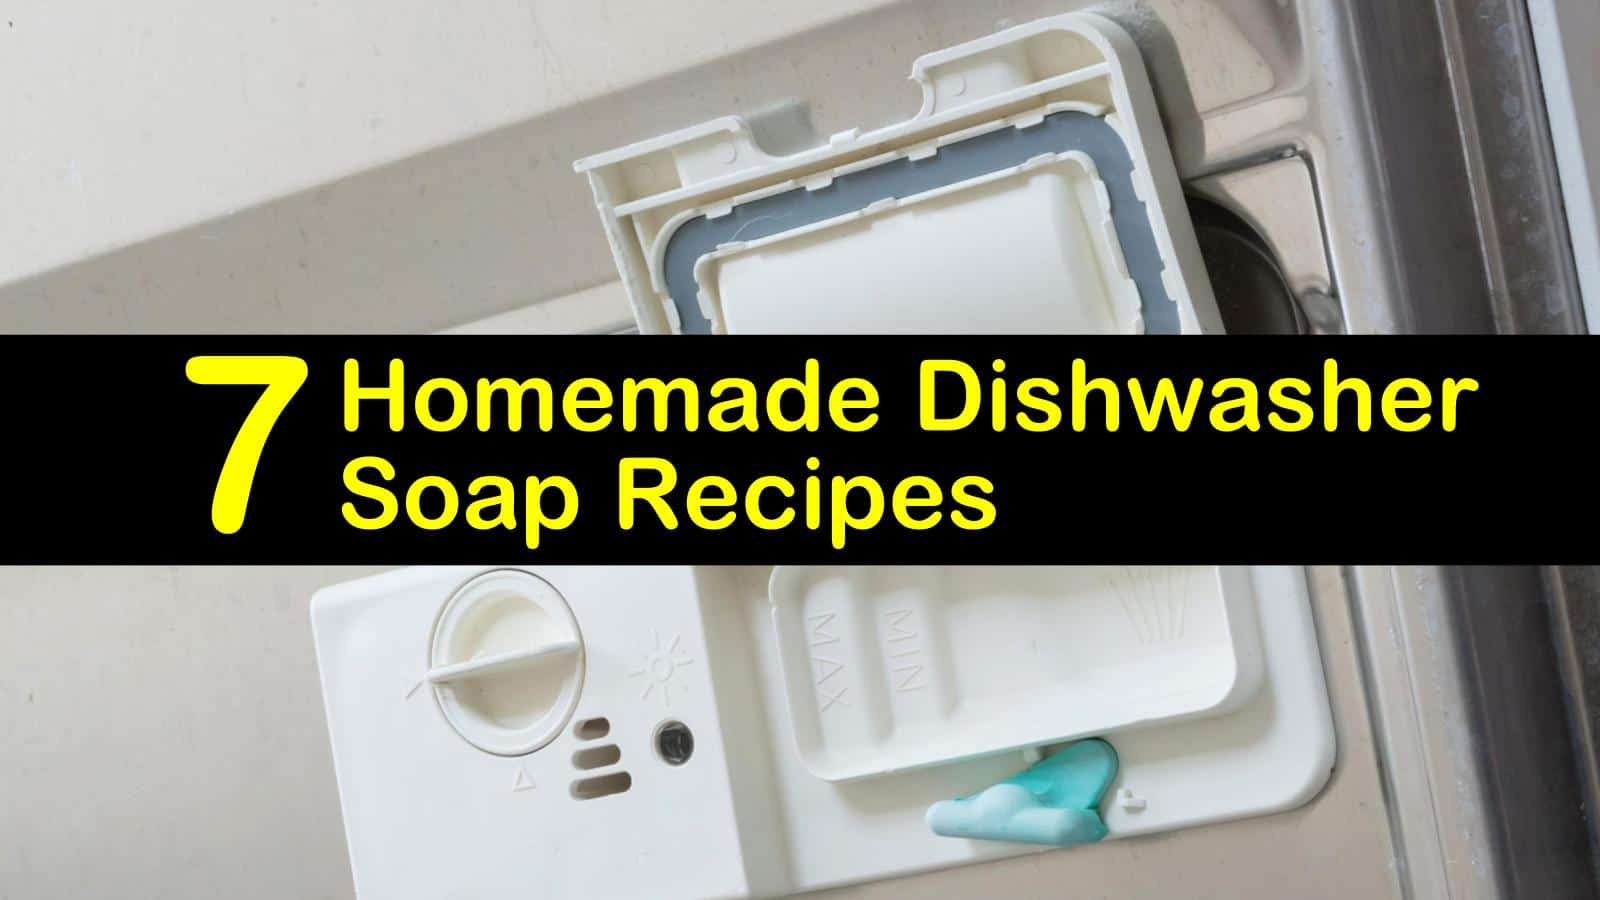 Recipes to Make Your Own Dishwasher Soap